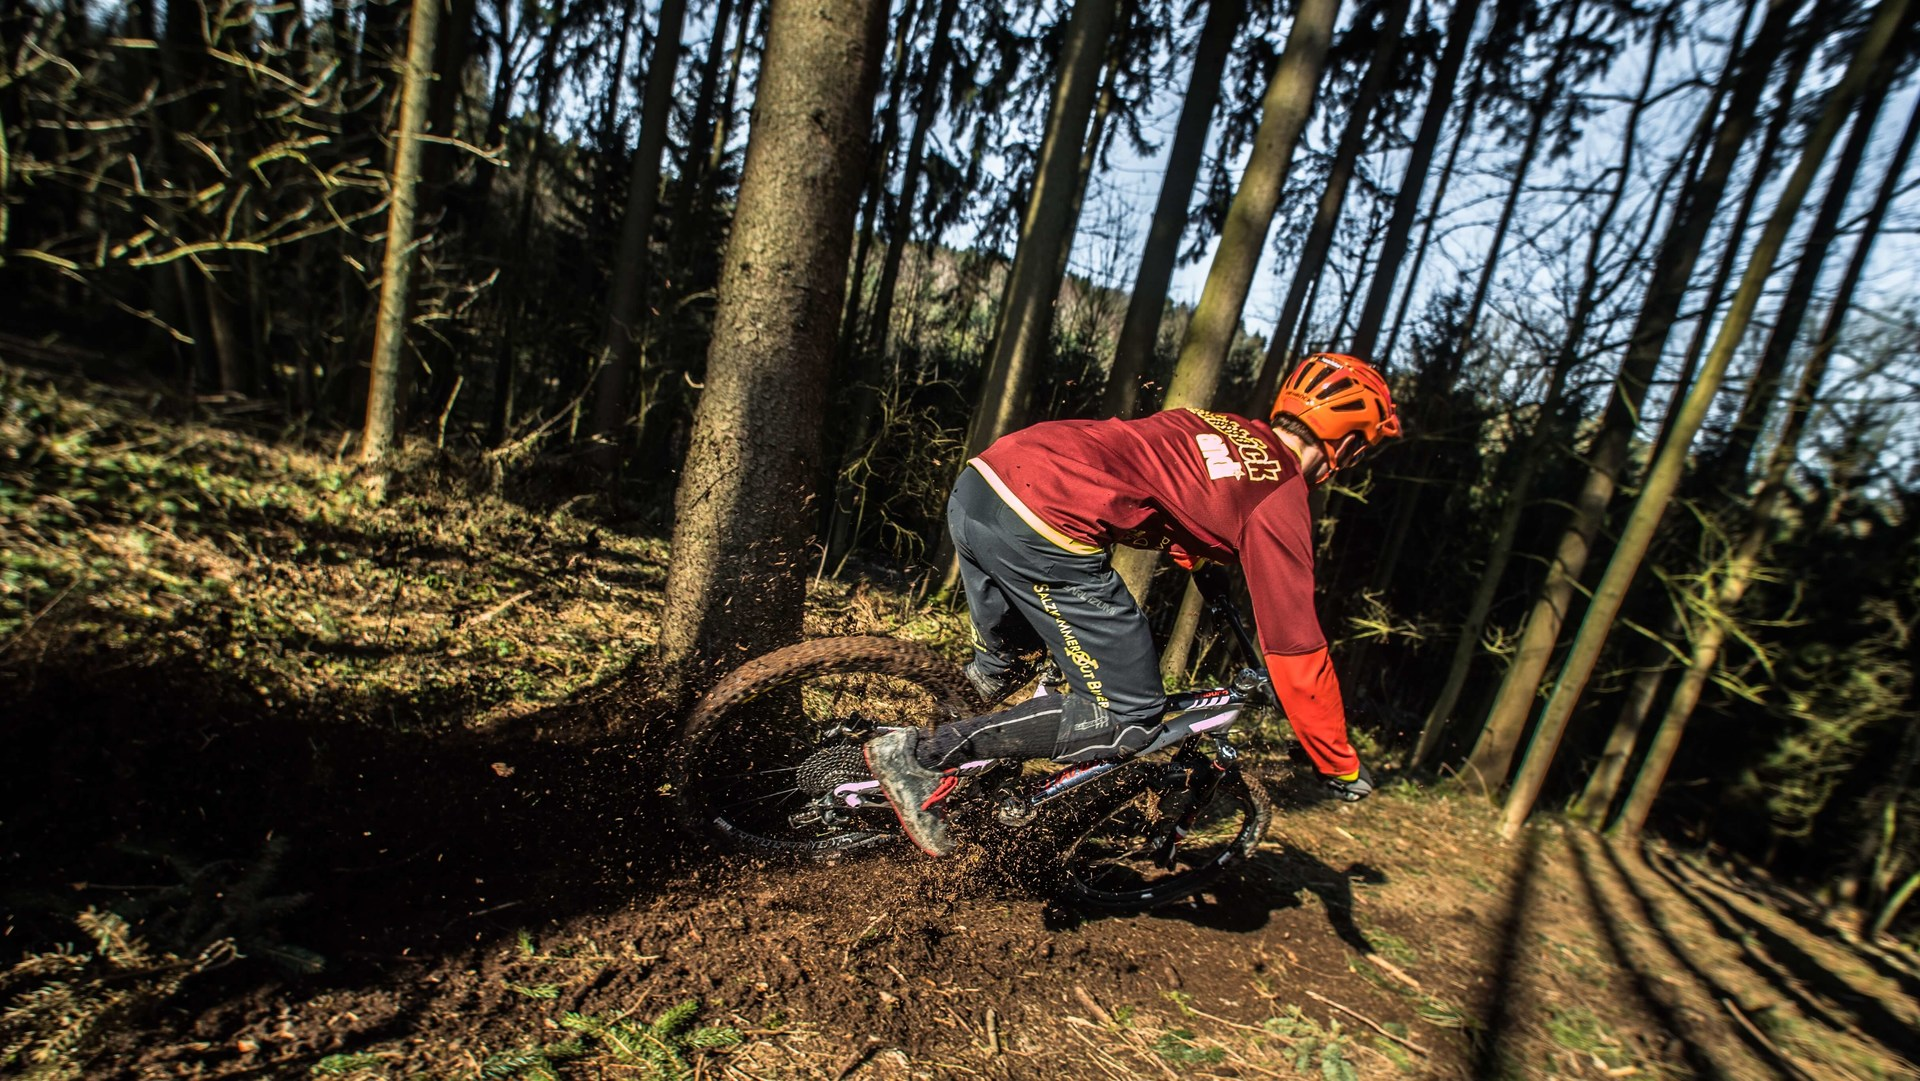 5 Tips For Buying A Used Mountain Bike Outdoor Project